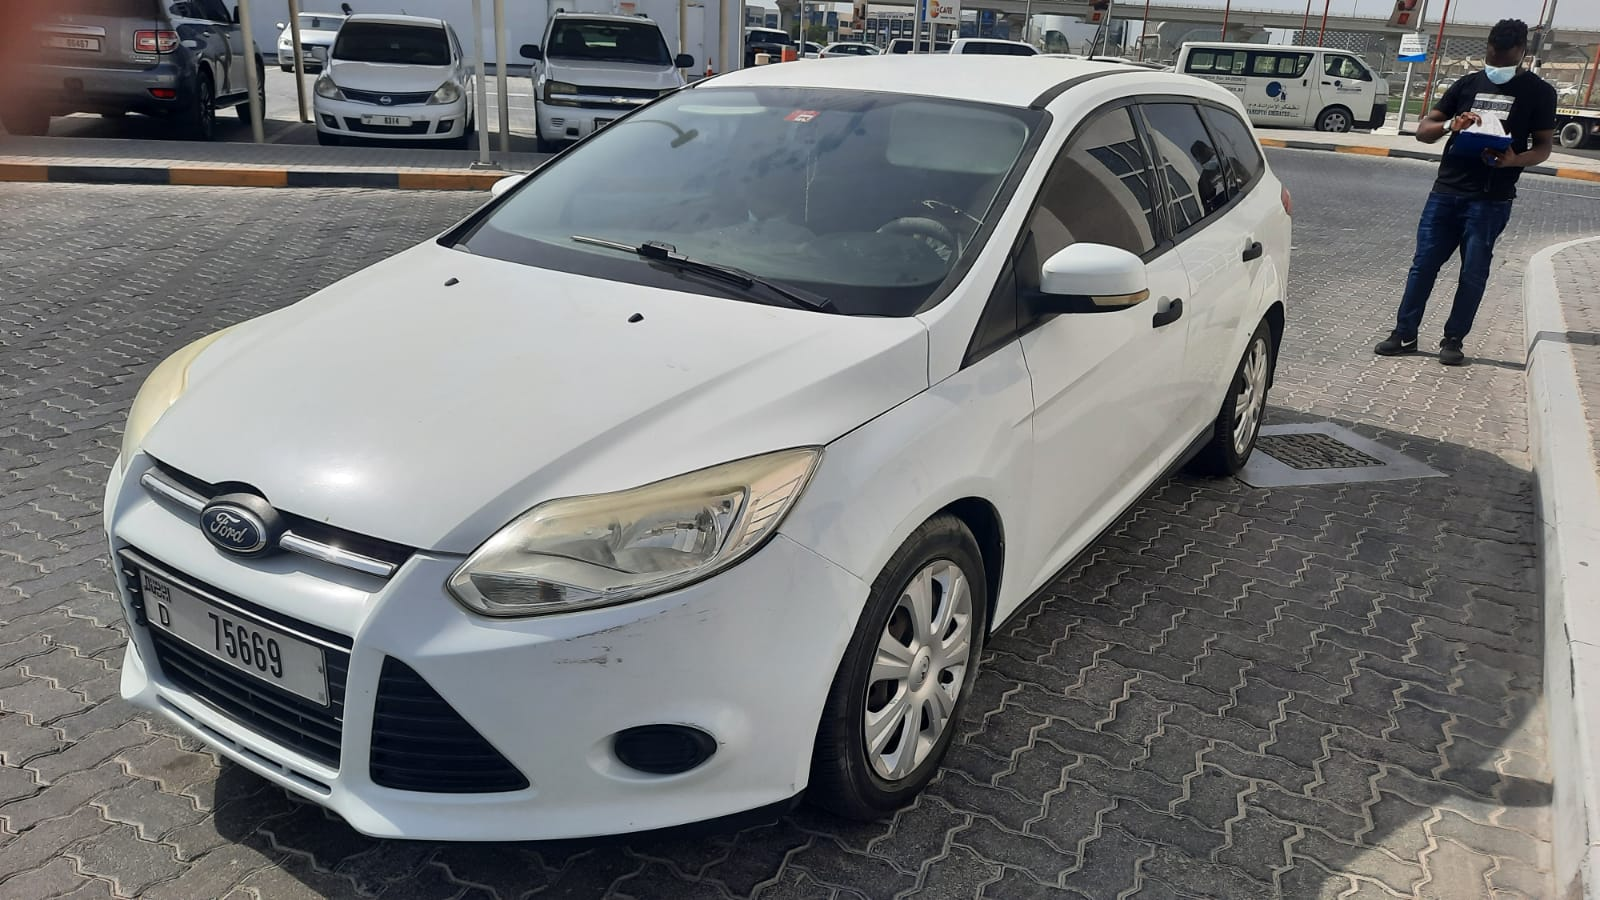 Used Ford Focus 1.6L 2012 For Sale In Dubai